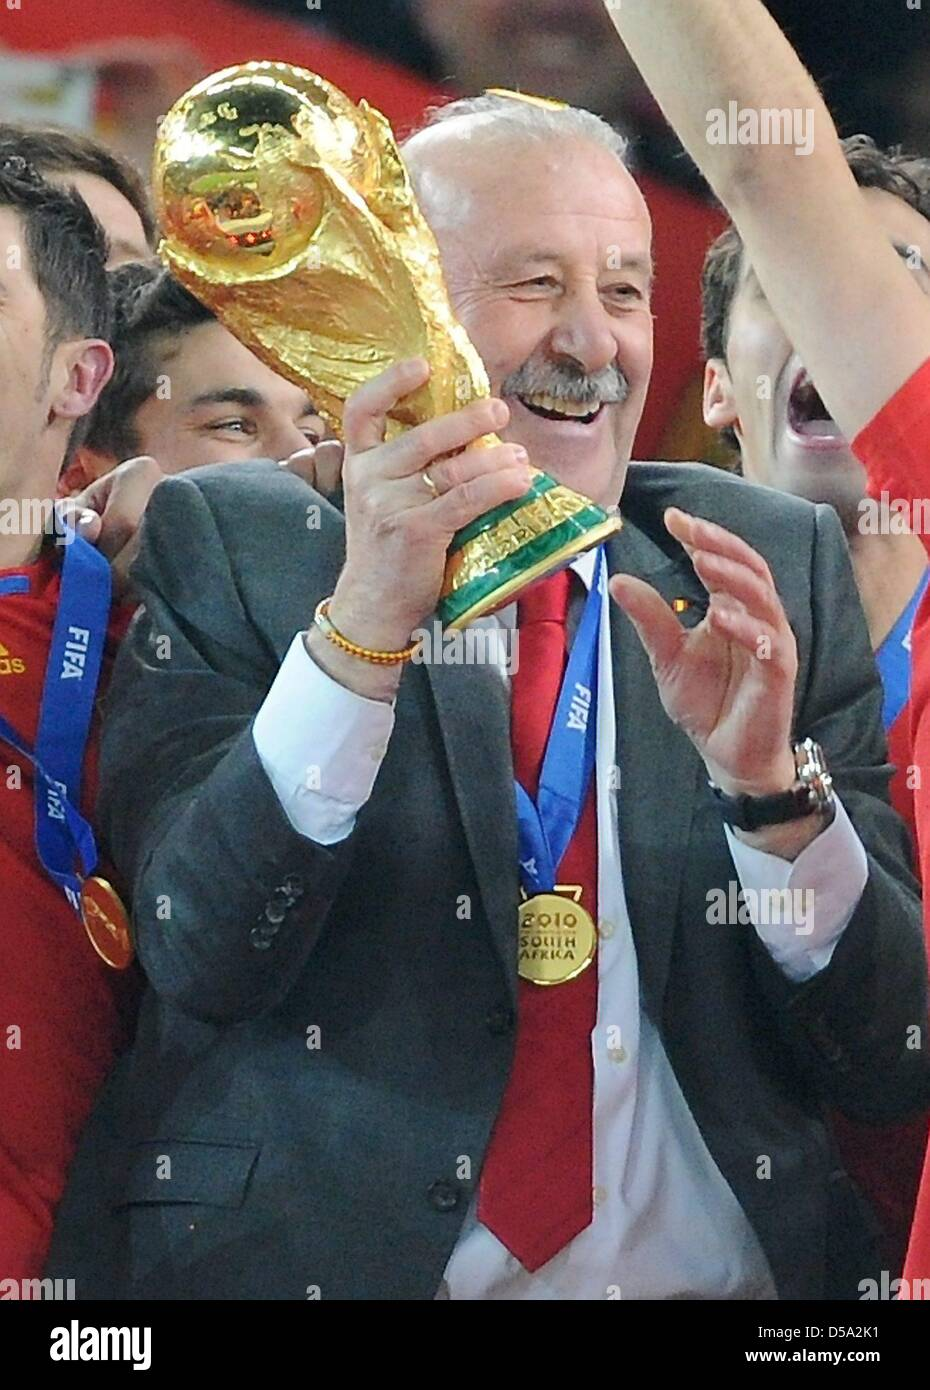 Spain S Coach Vicente Del Bosque C Lifts The World Cup Trophy After The 2010 Fifa World Cup Final Match Between The Netherlands And Spain At Soccer City Stadium In Johannesburg South Africa